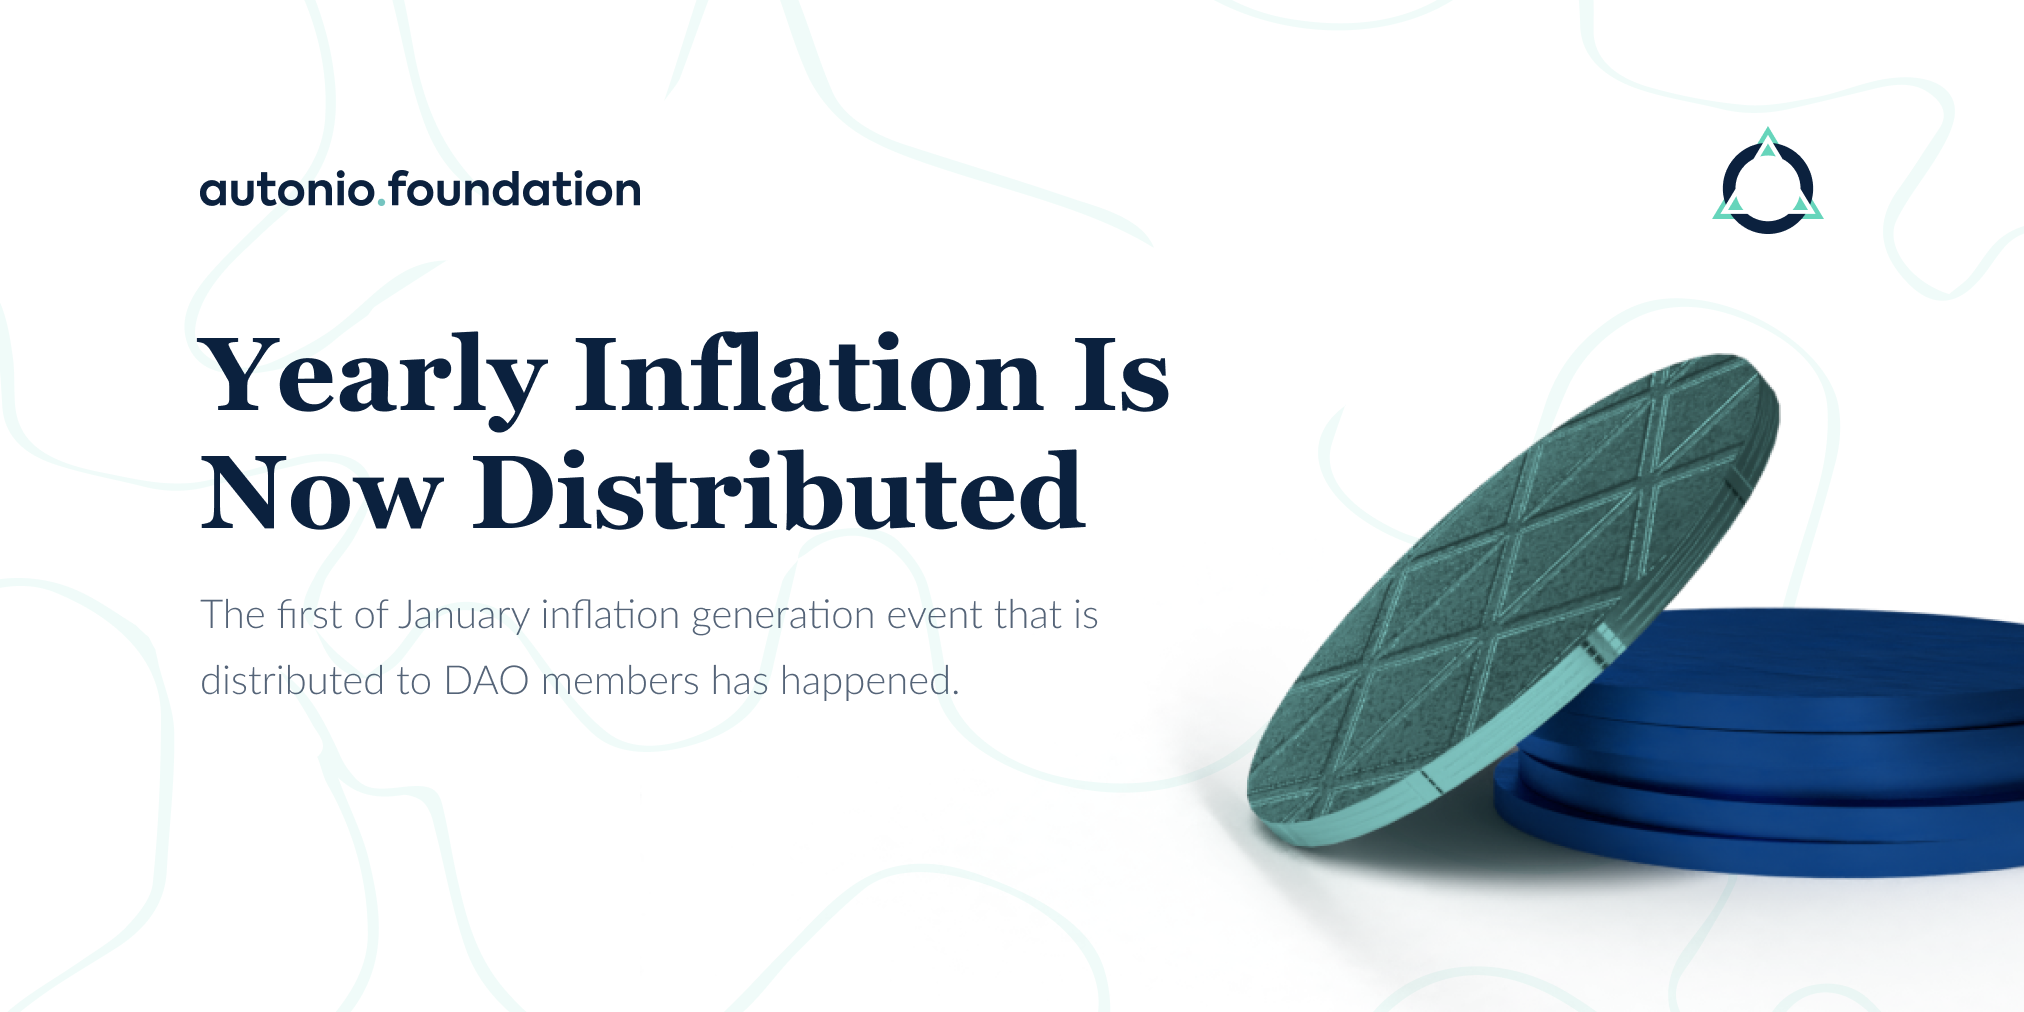 Yearly Inflation Distribution